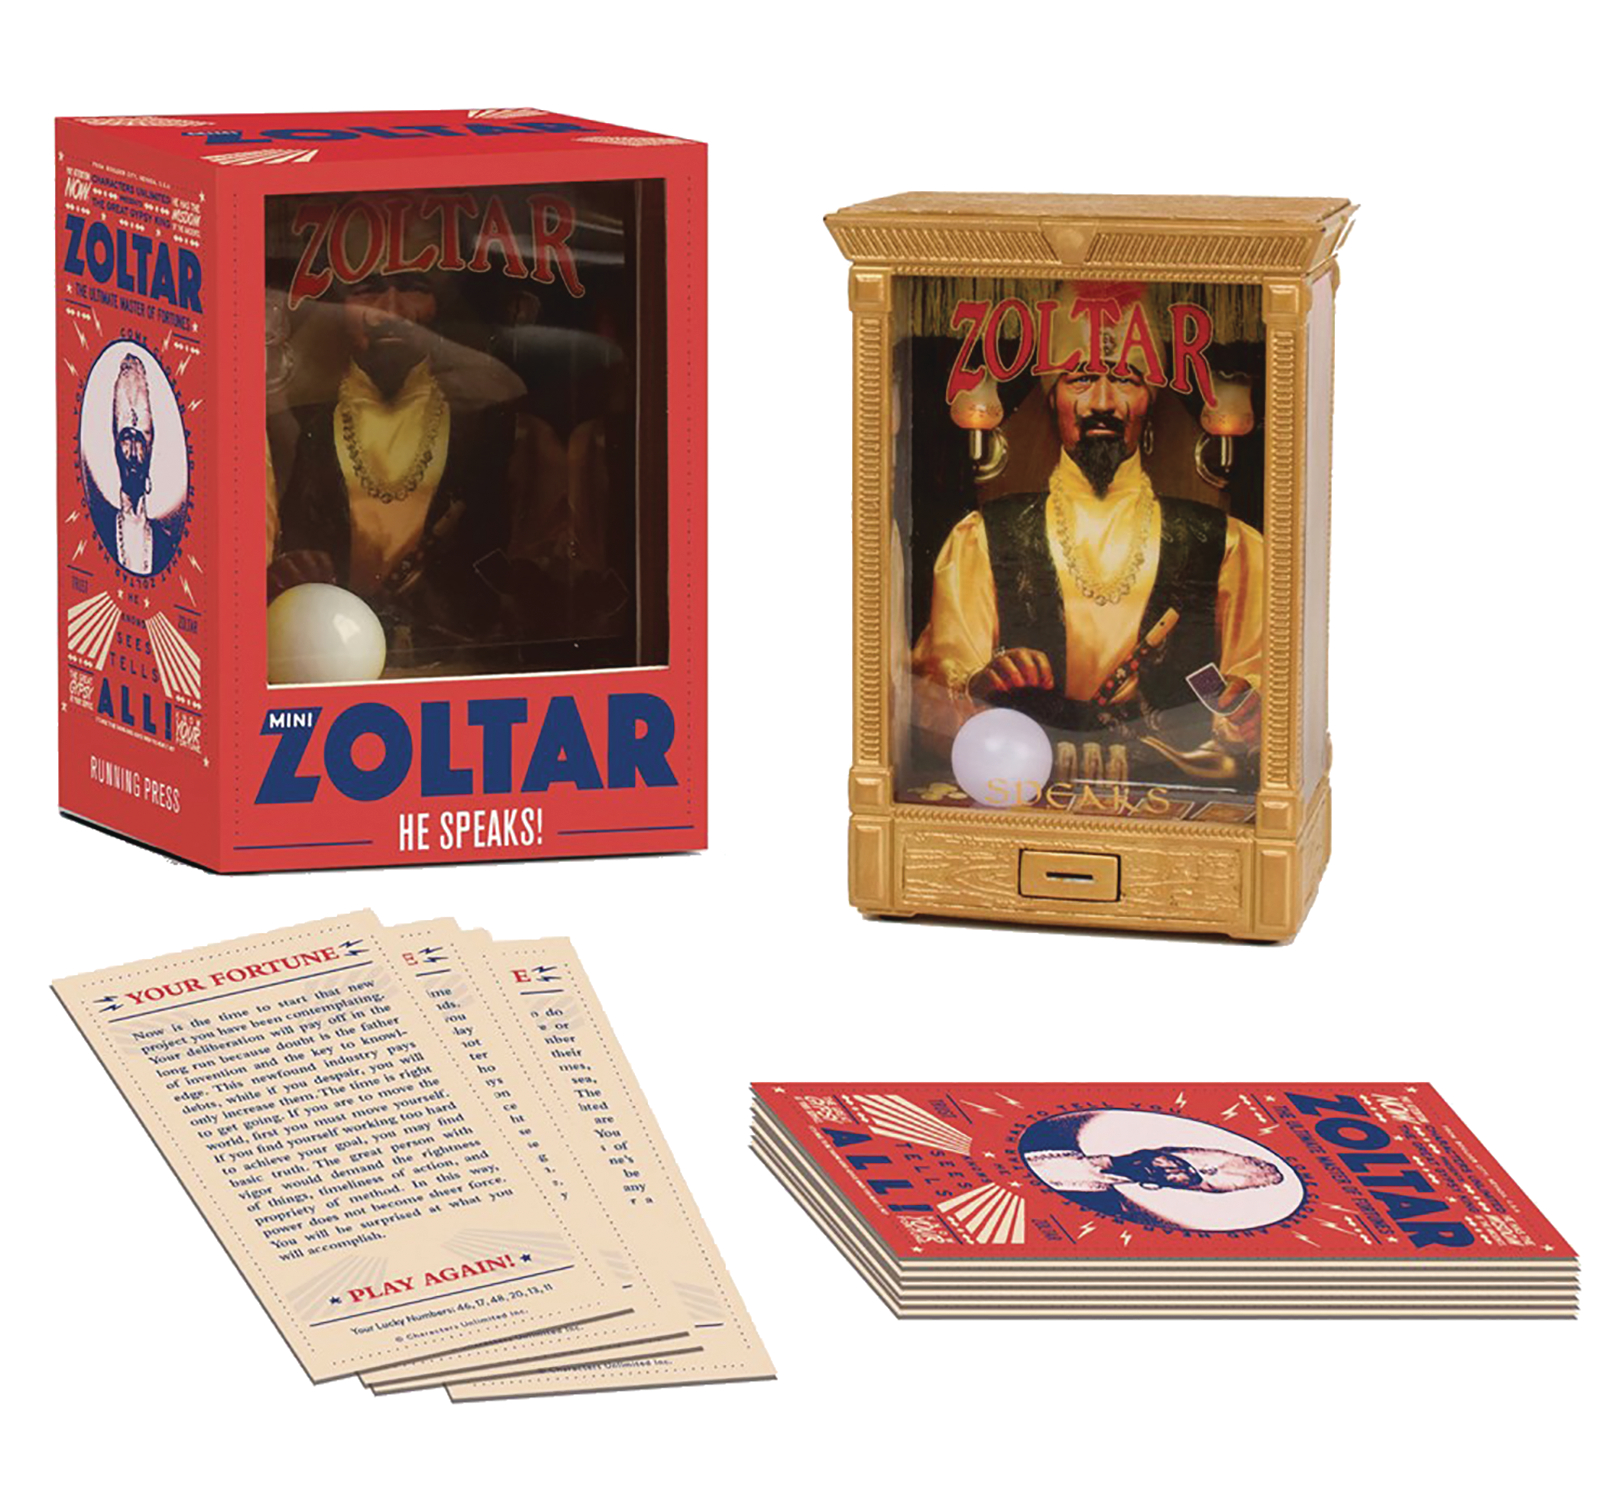 MINI ZOLTAR HE SPEAKS KIT